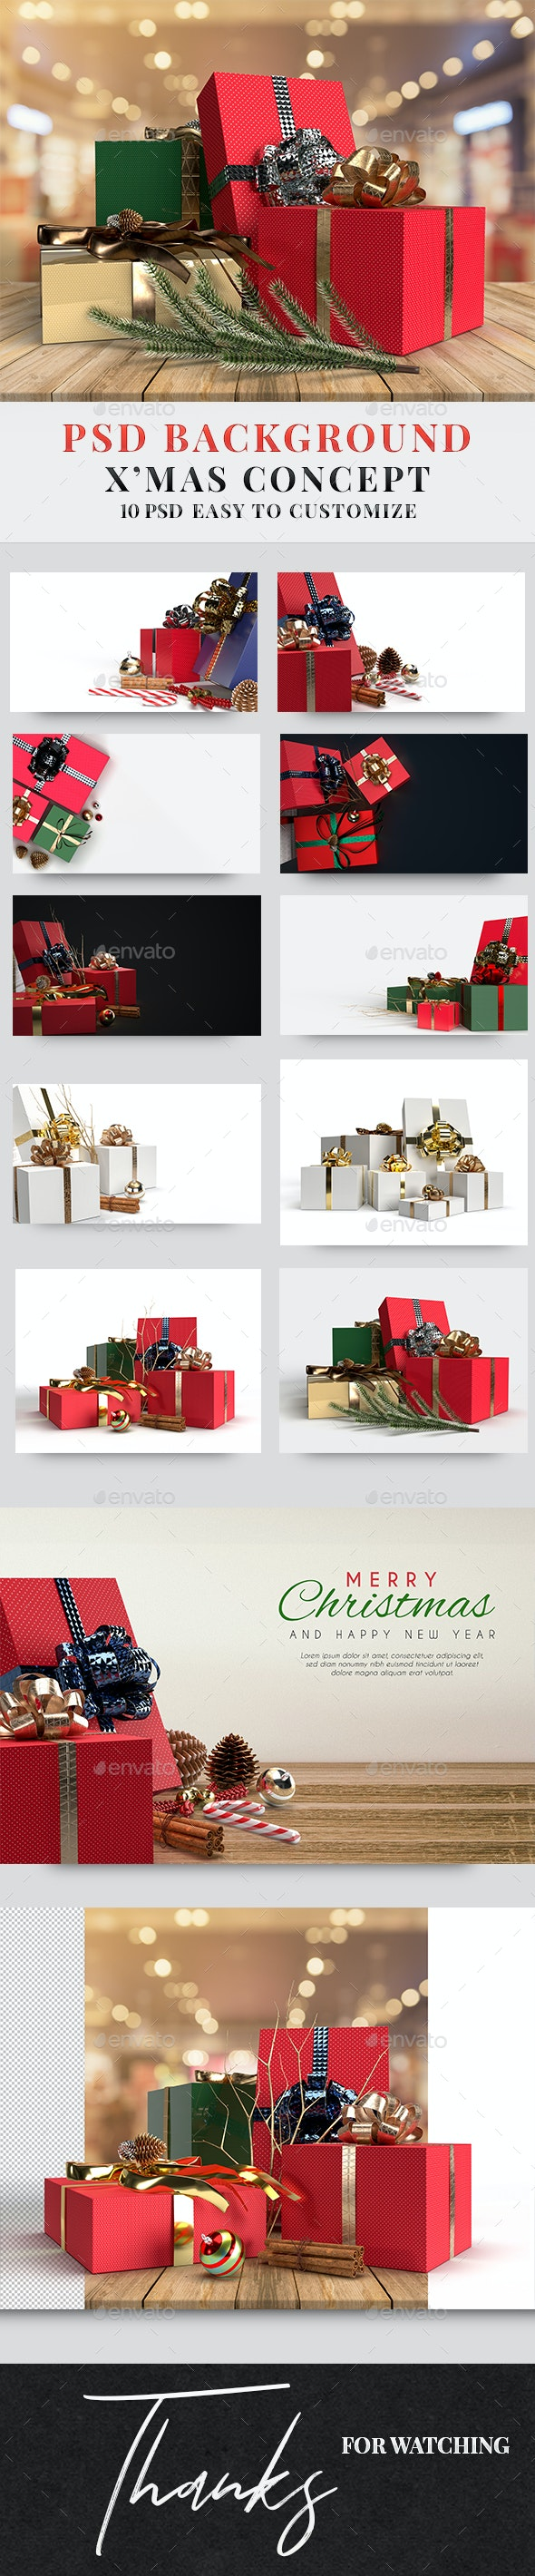 PSD Background Merry Christmas Concept - Backgrounds Graphics